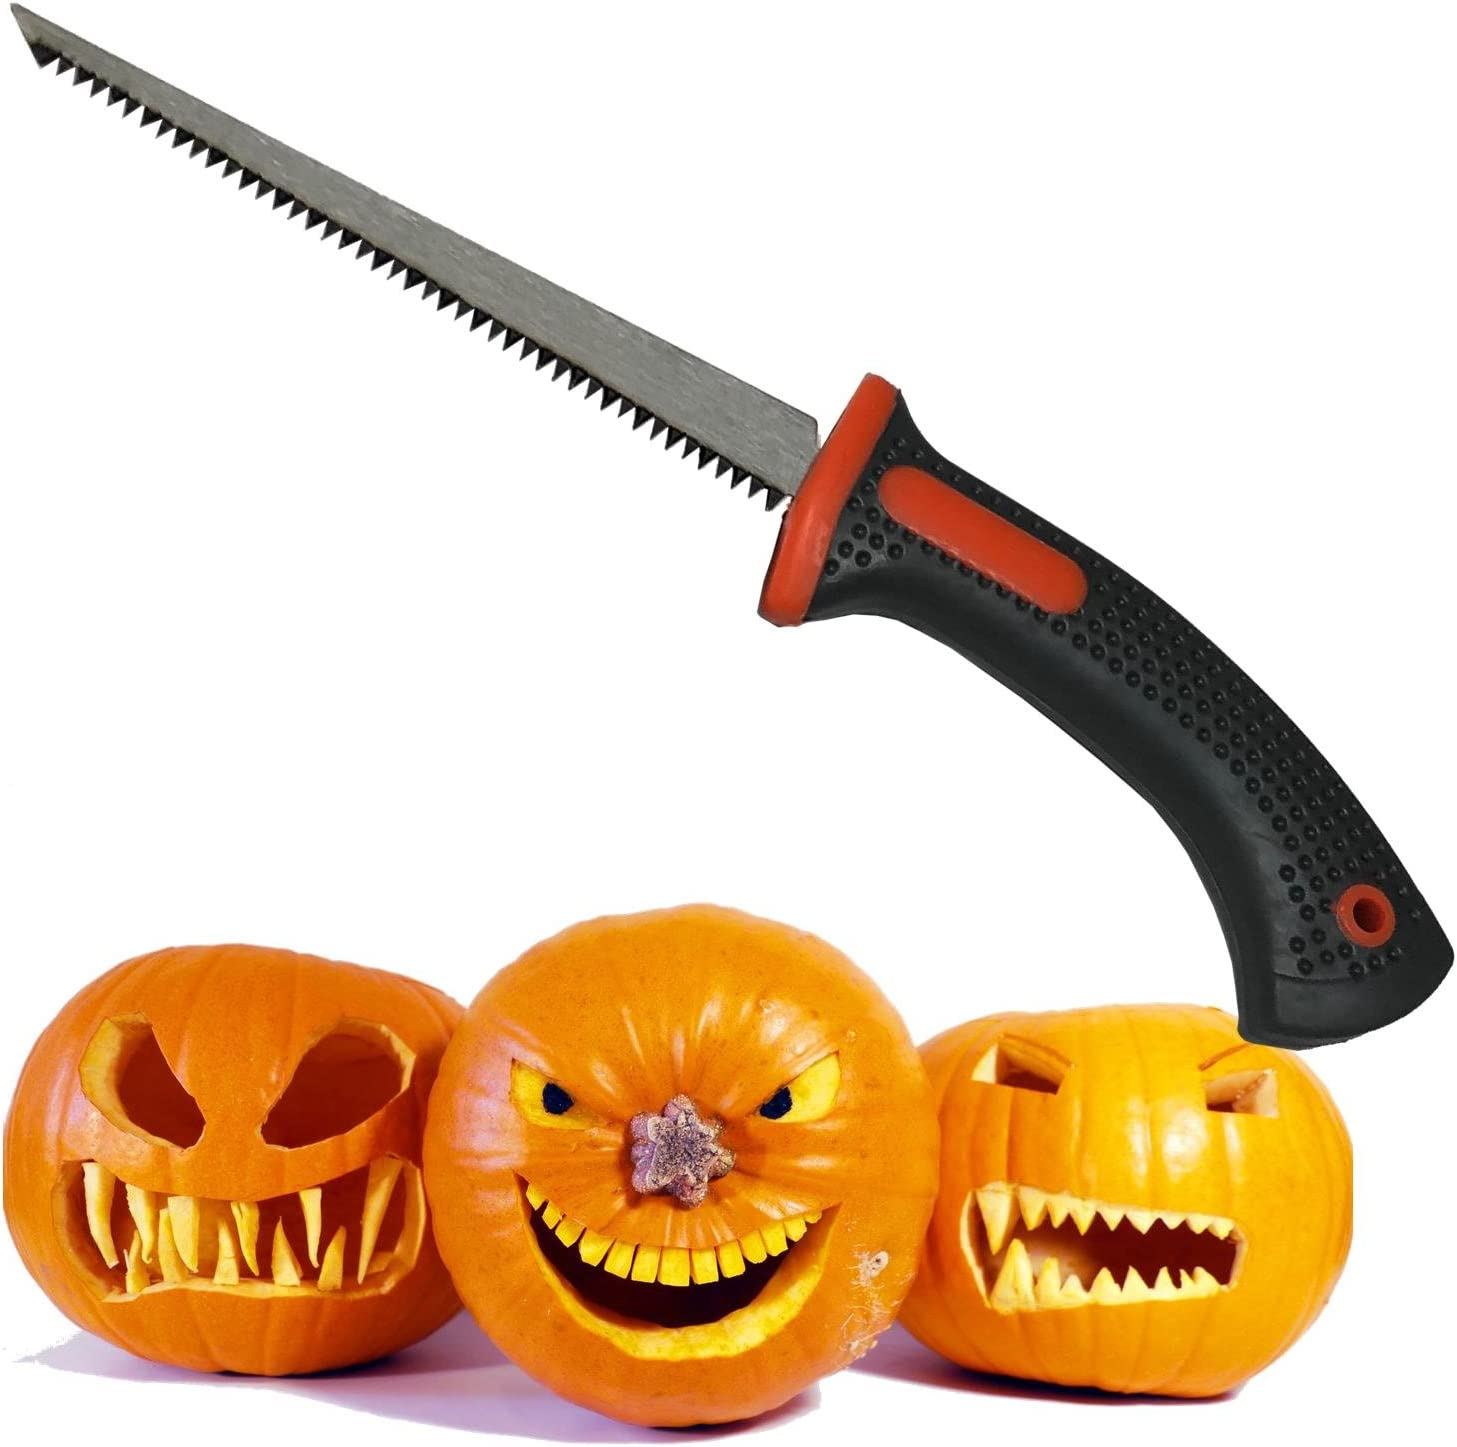 Keyfit Tools PROFESSIONAL Pumpkin Carving Only Free Shipping Cheap Bargain Gift Knife Max 47% OFF Adult Use